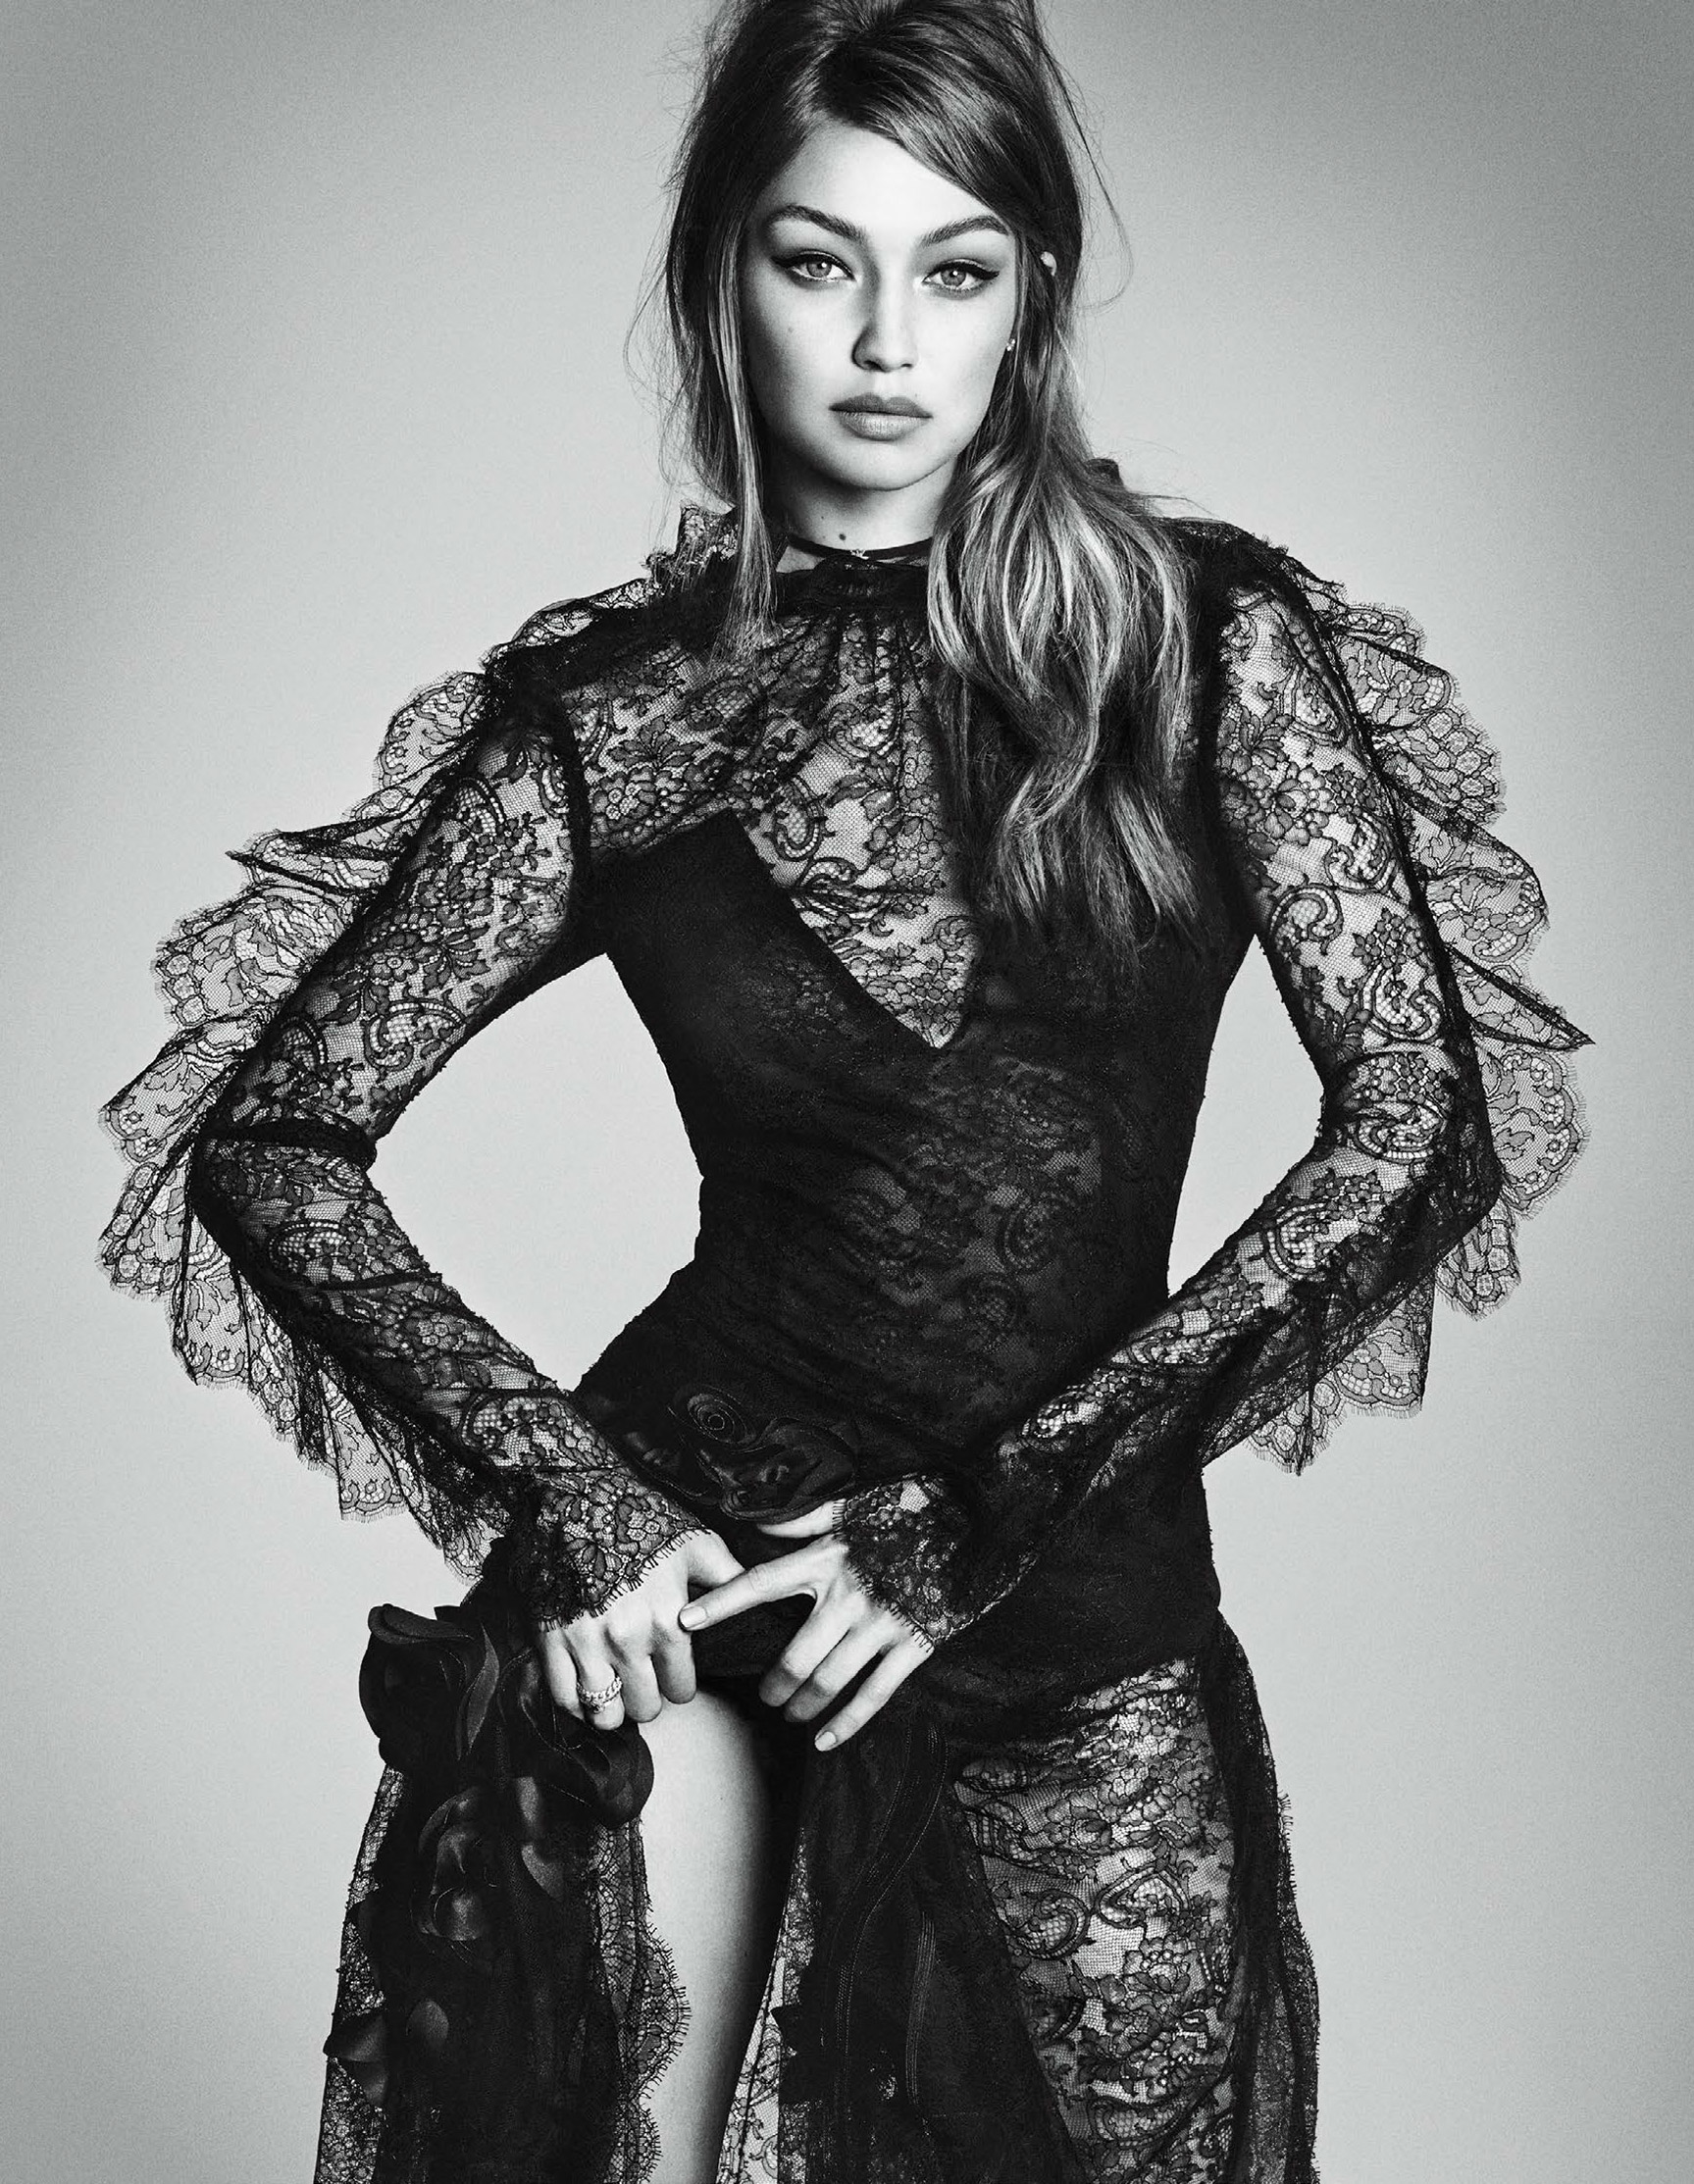 Джиджи Хадид / Gigi Hadid by Luigi Murenu and Iango Henzi - Vogue Japan december 2016